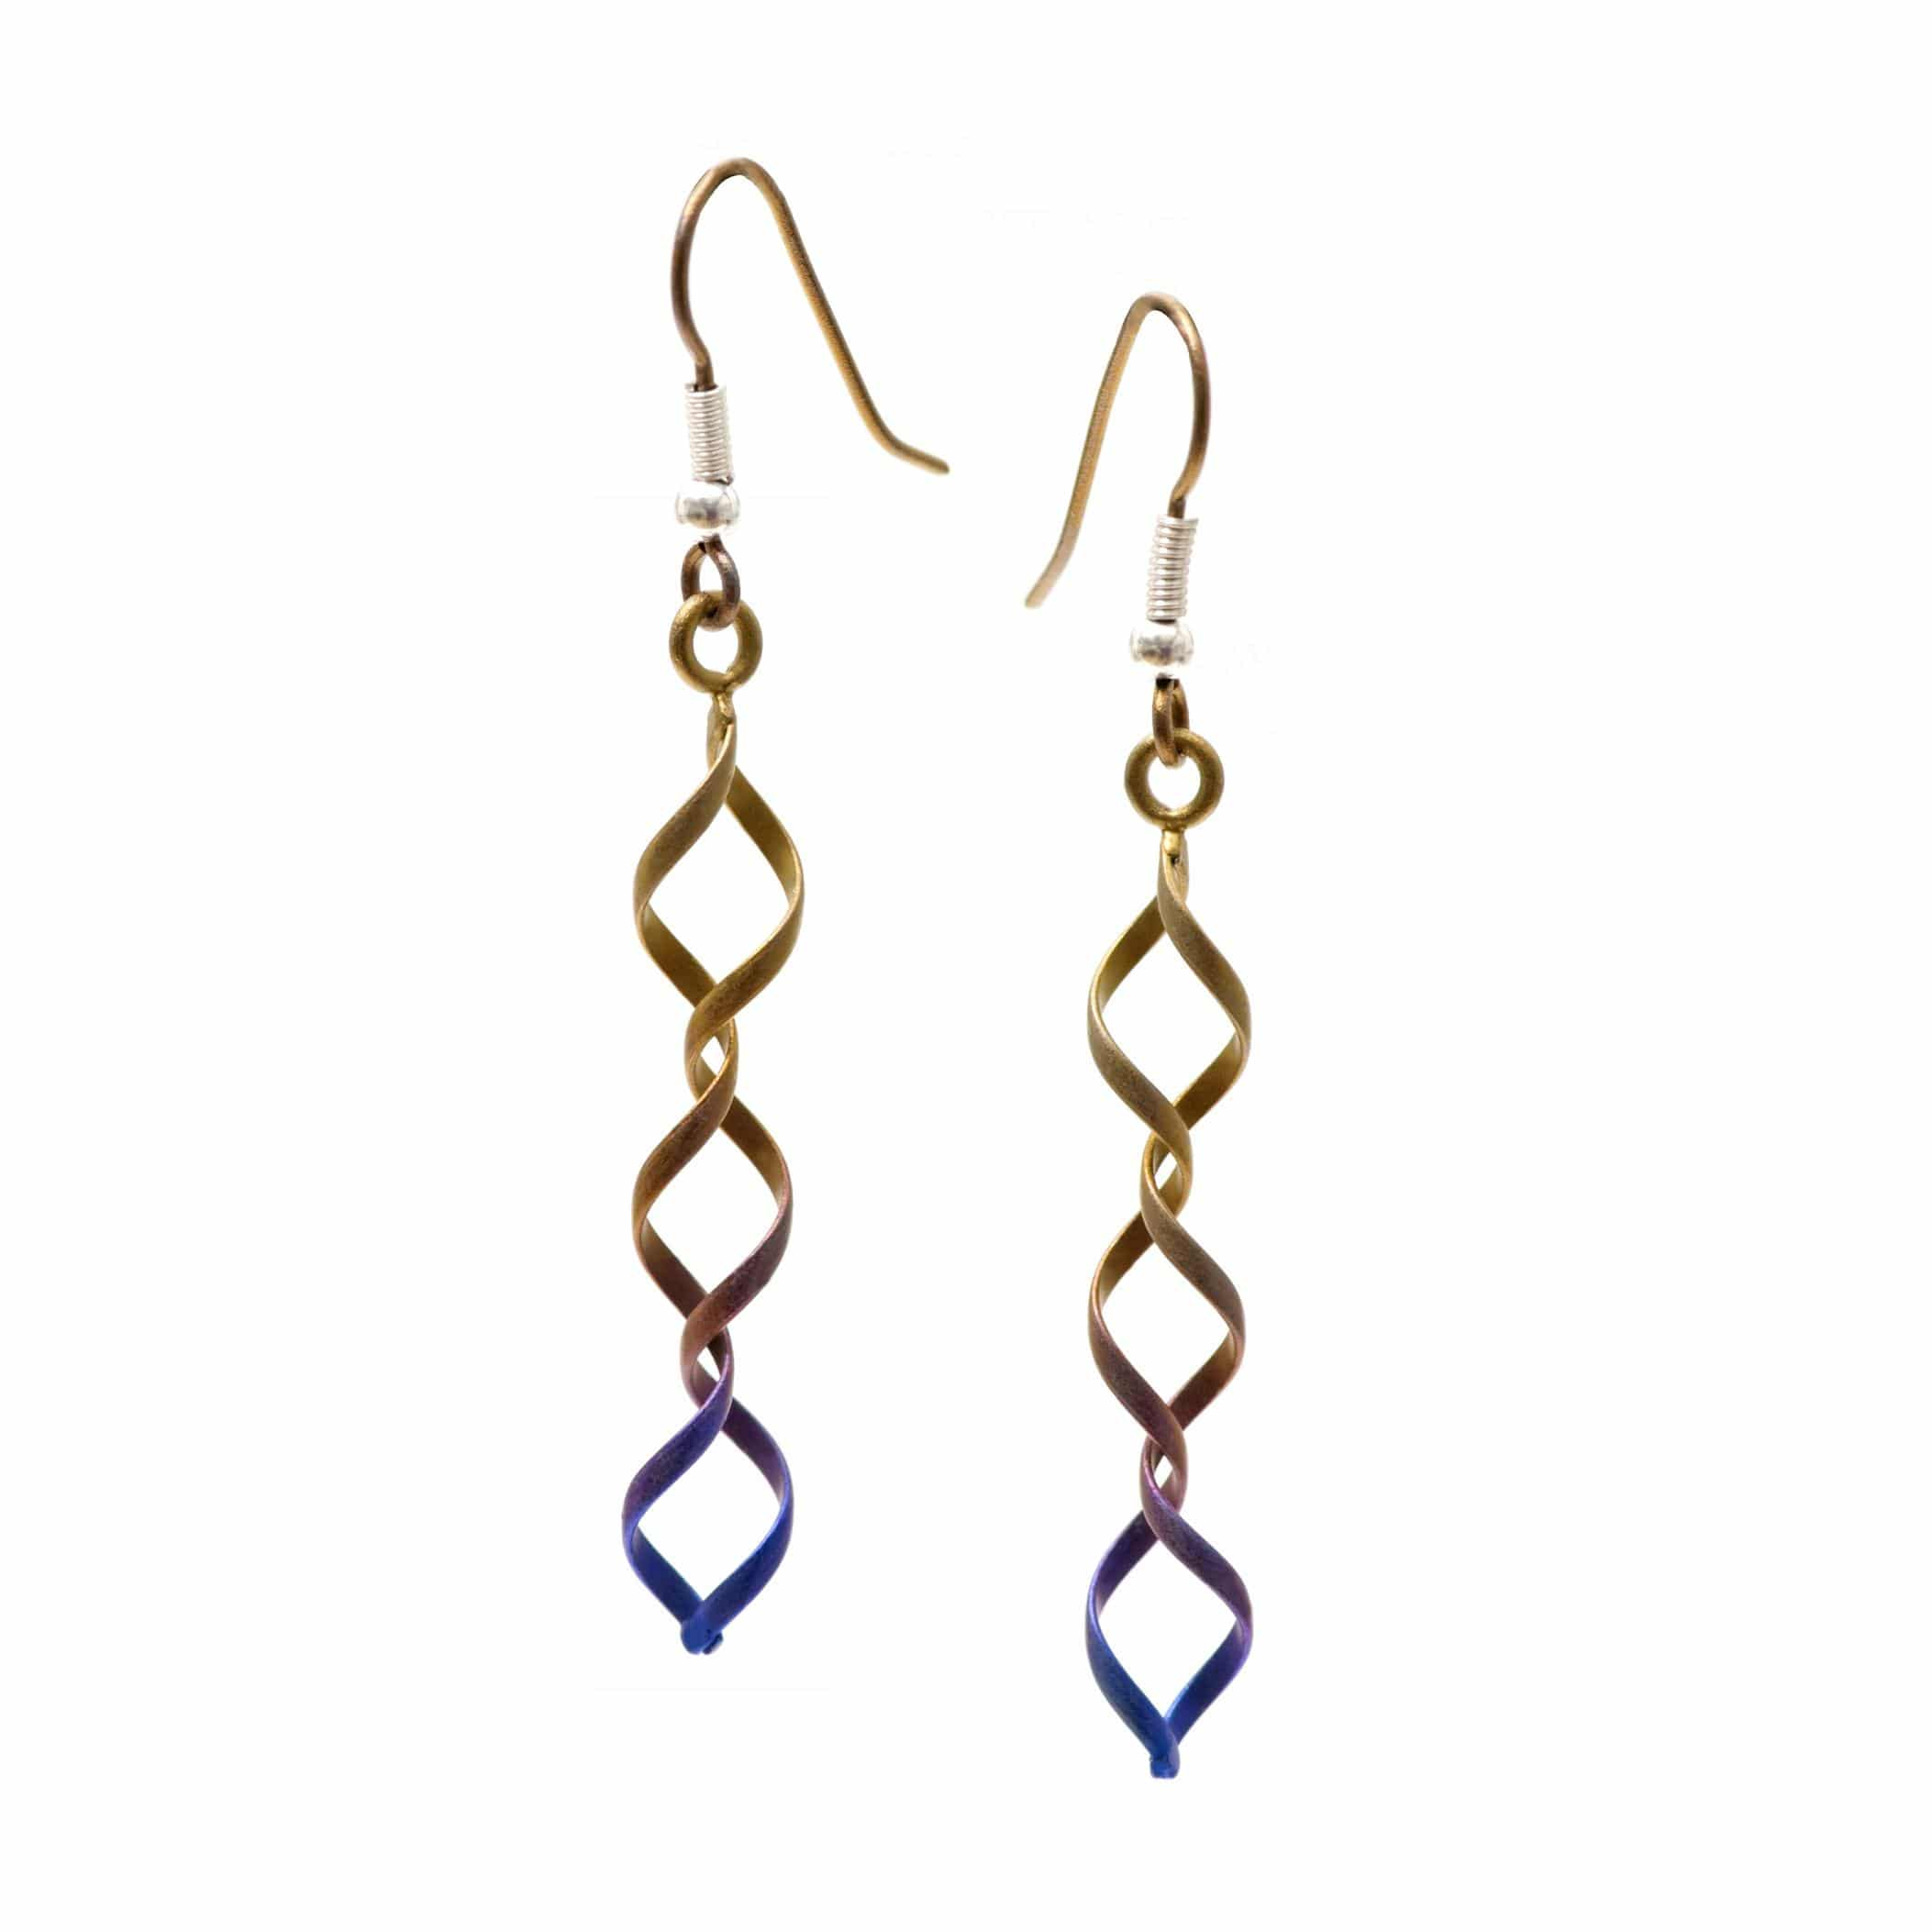 Ti2 Titanium Wire Work Drop Earrings - Brown